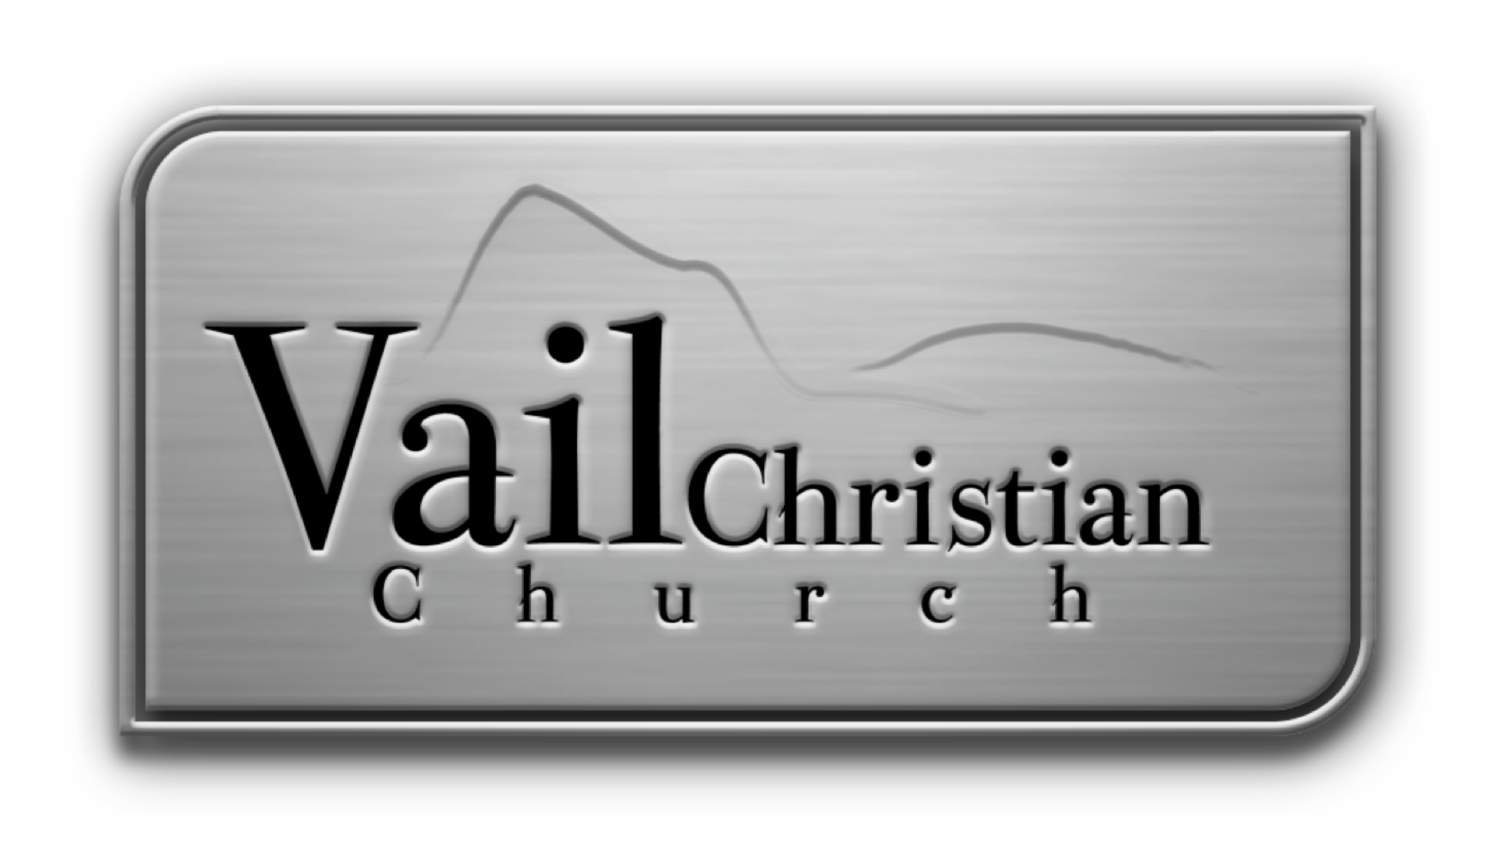 Vail Christian Church